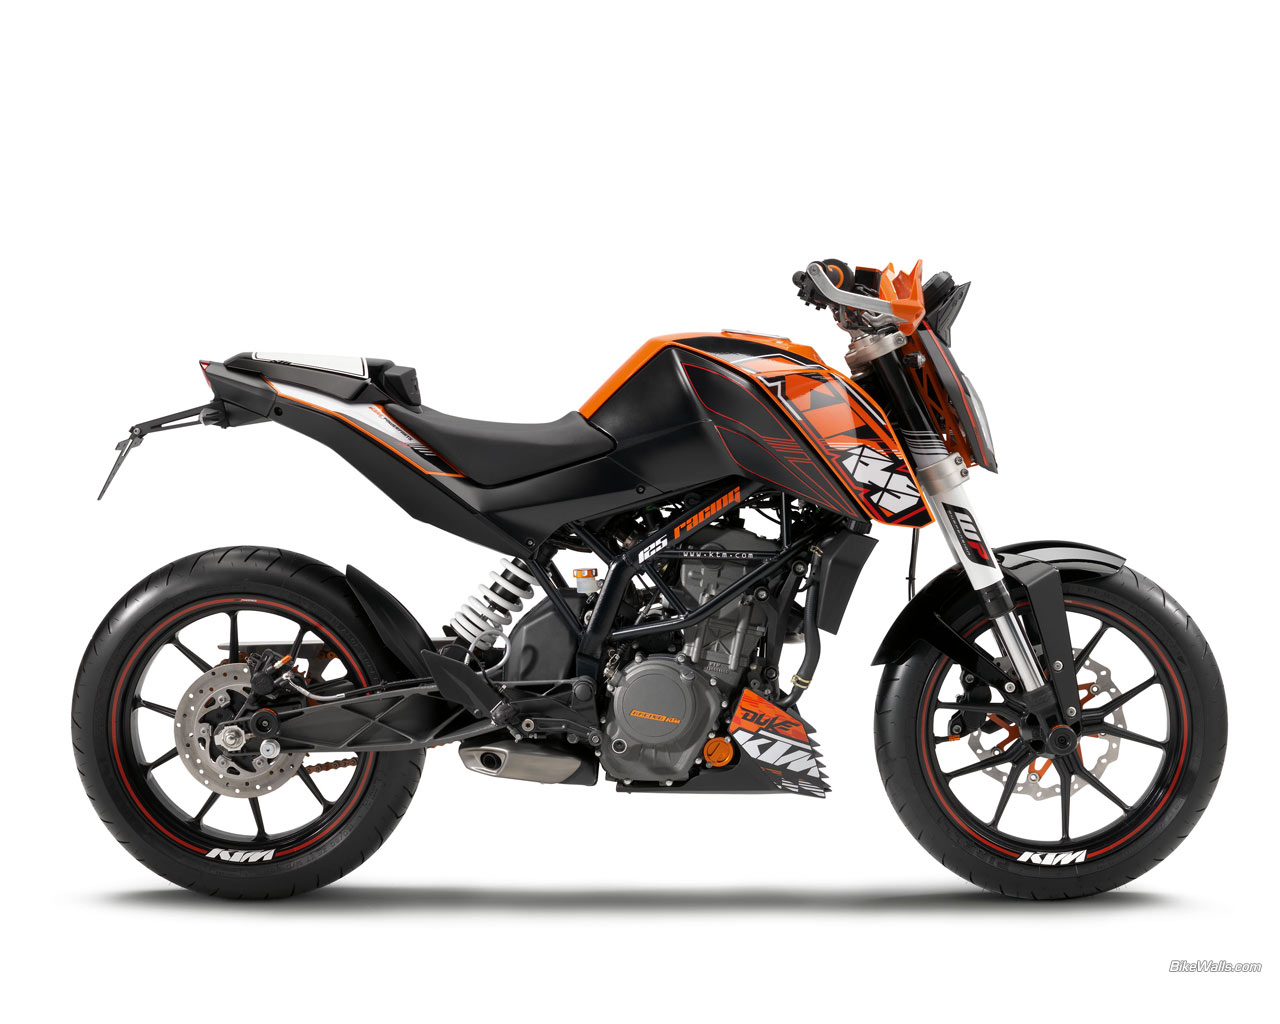 2011 ktm 125 duke moto zombdrive com. Black Bedroom Furniture Sets. Home Design Ideas